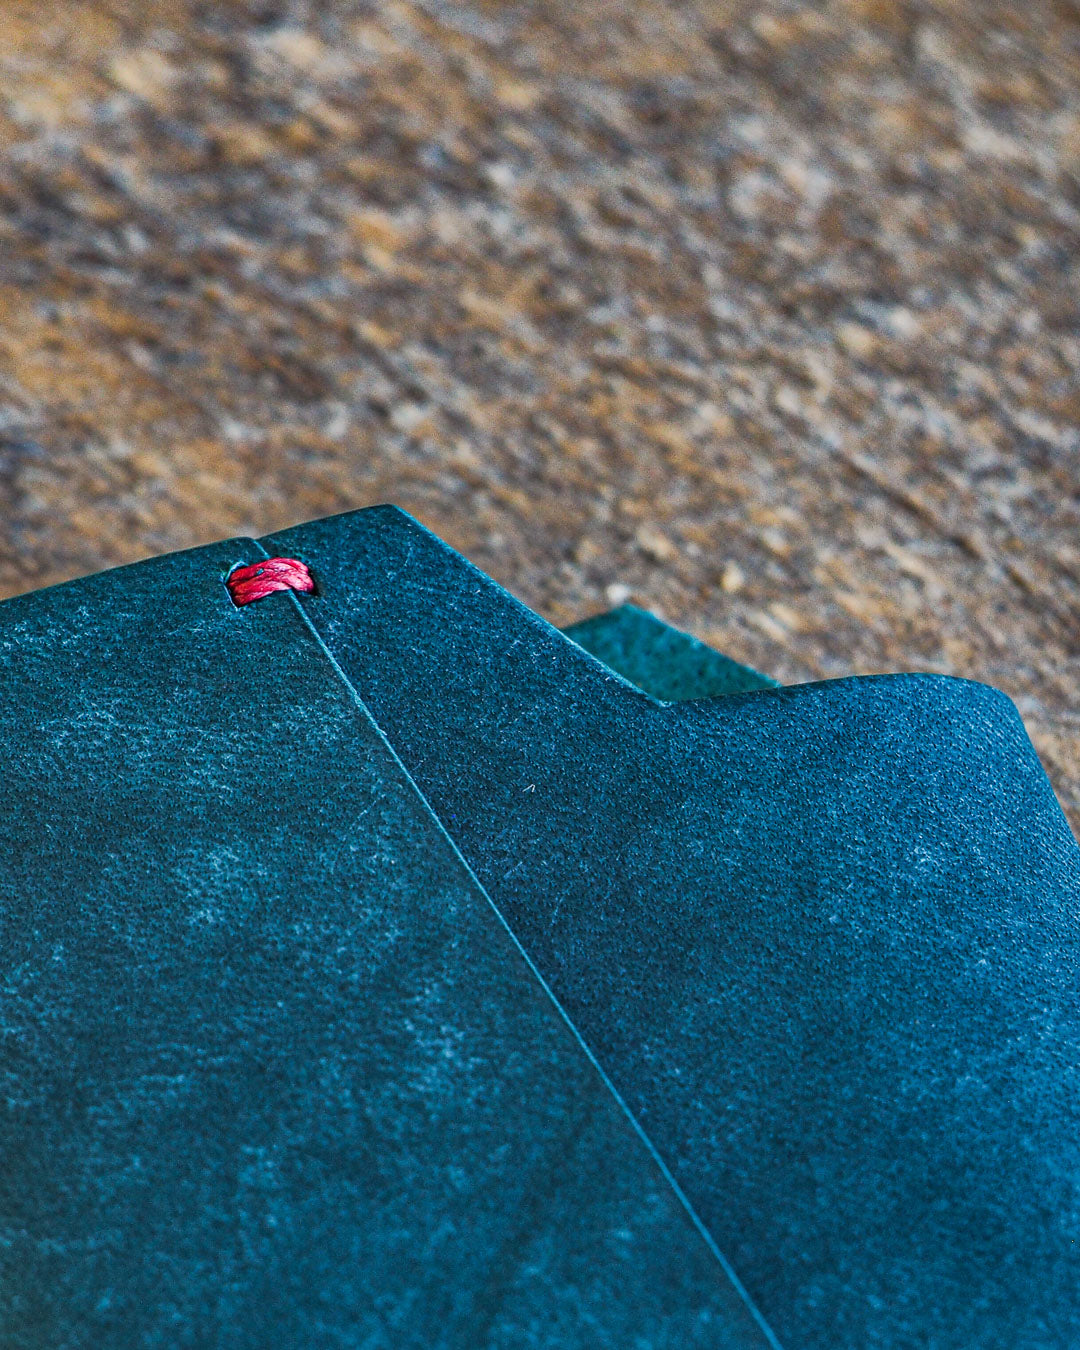 Luava handmade leather wallet handcrafted card holder wrap cardholder made in finland vortex maya turquoise front detail